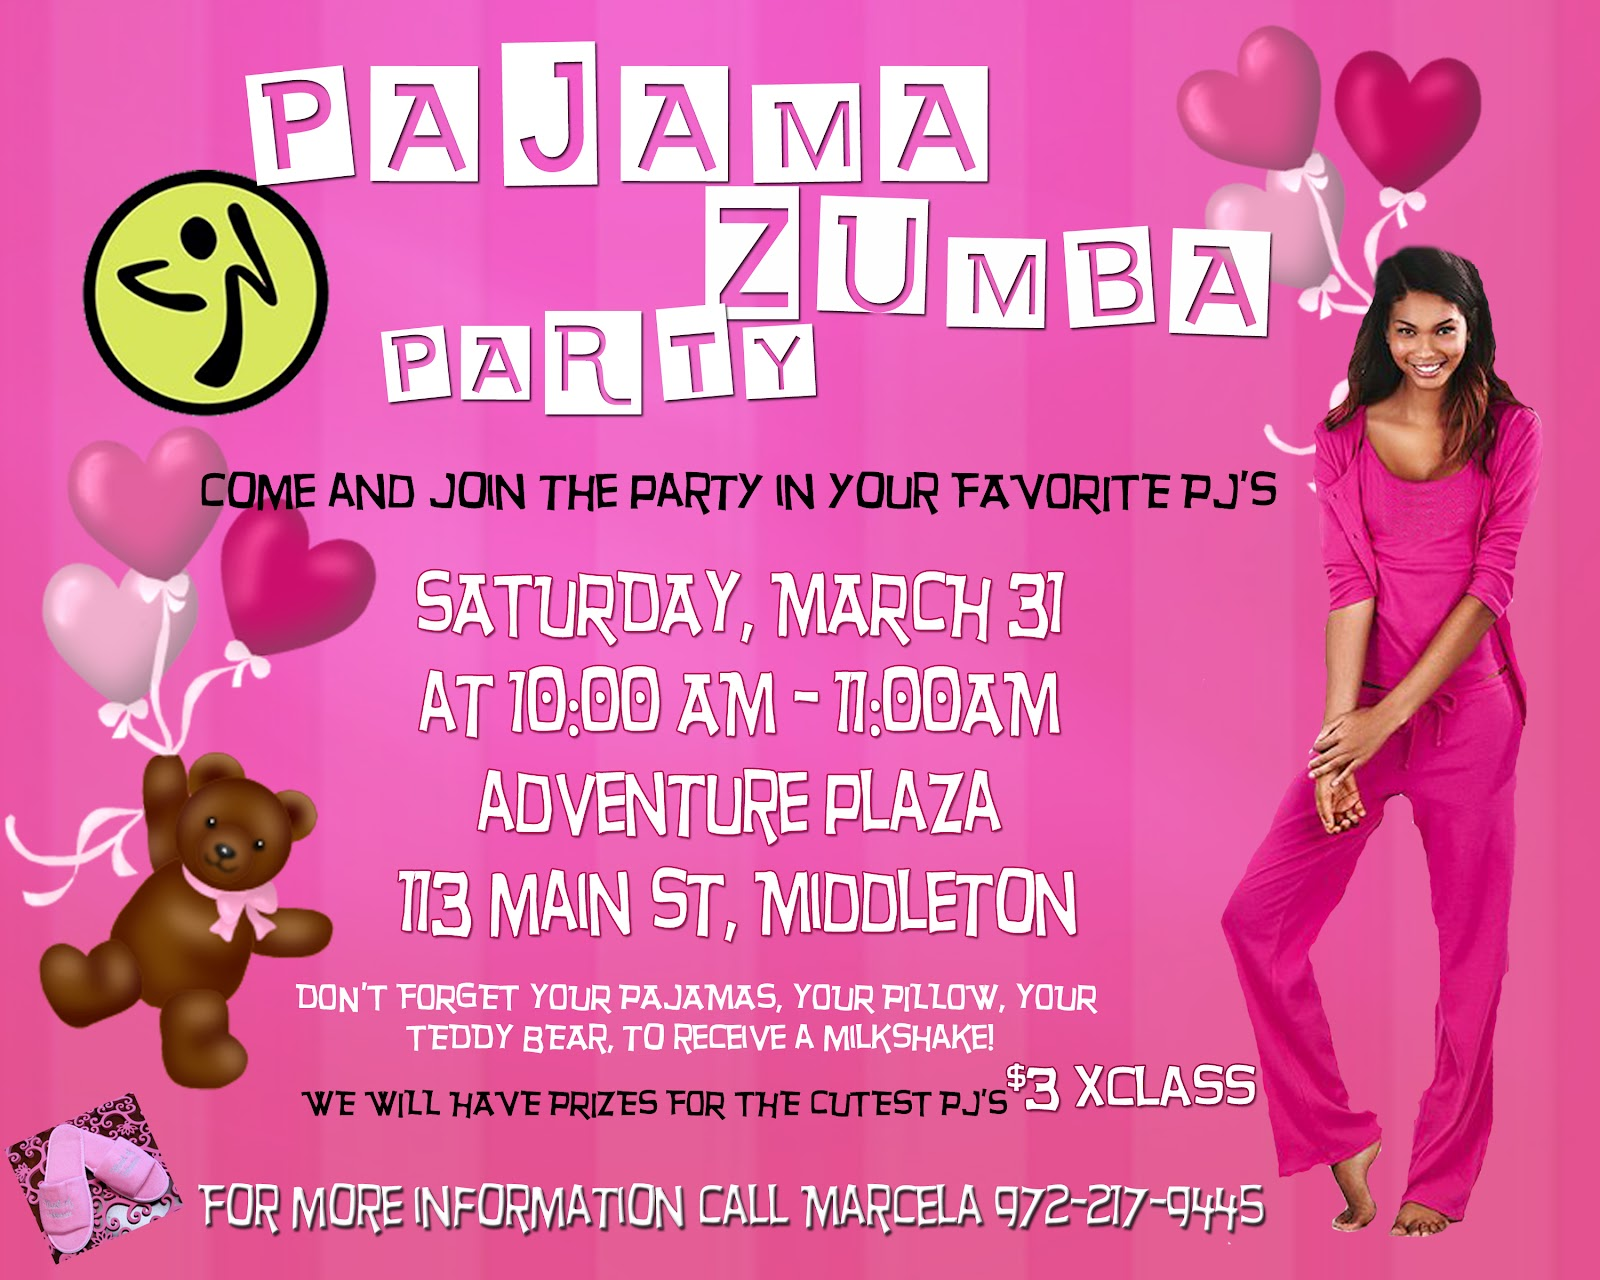 Marcela zumba fitness come and join the party in your favorite pjs do not forget your pjs bring your pillow or your teddy bear and you will receive a free milkshake stopboris Images